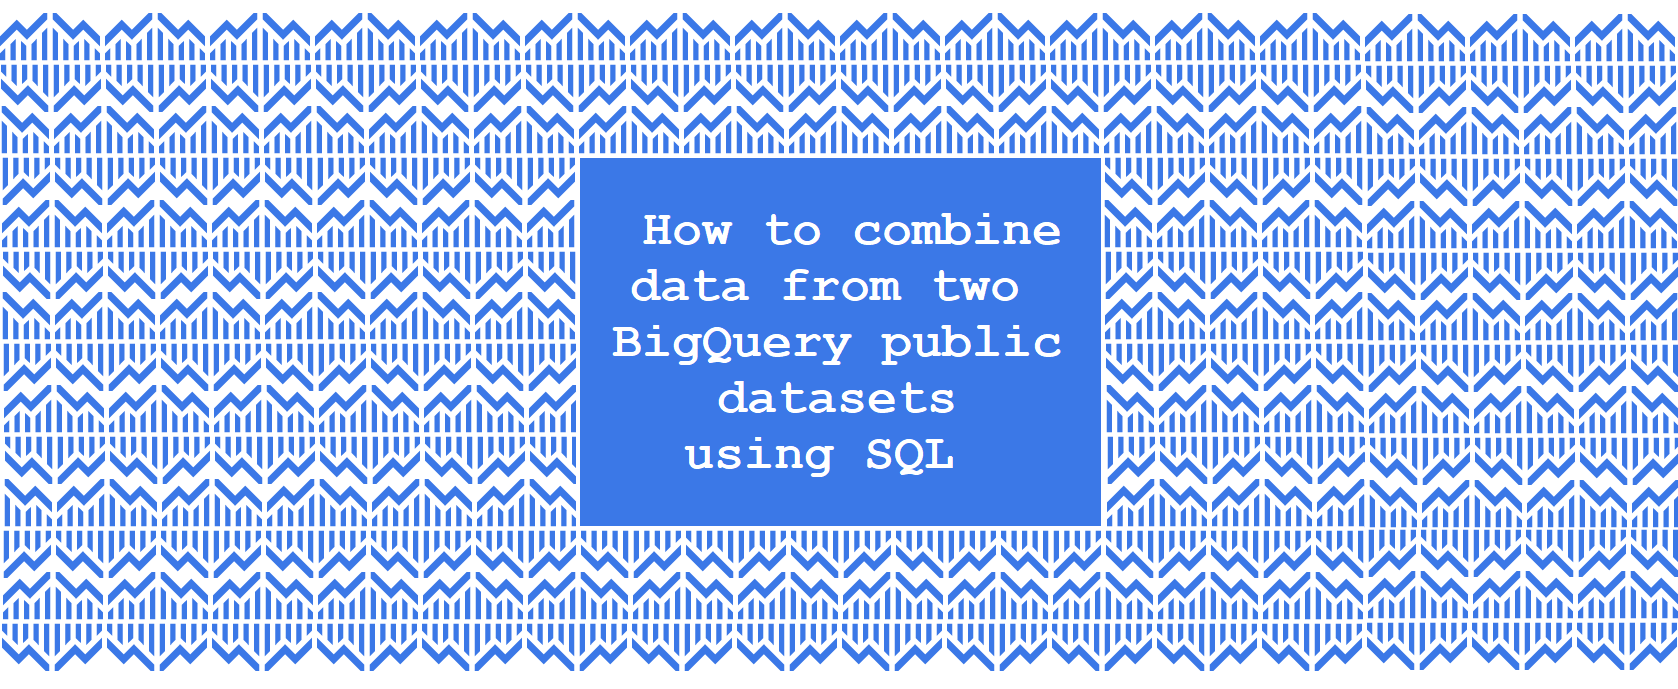 How to combine data from two BigQuery public datasets using SQL